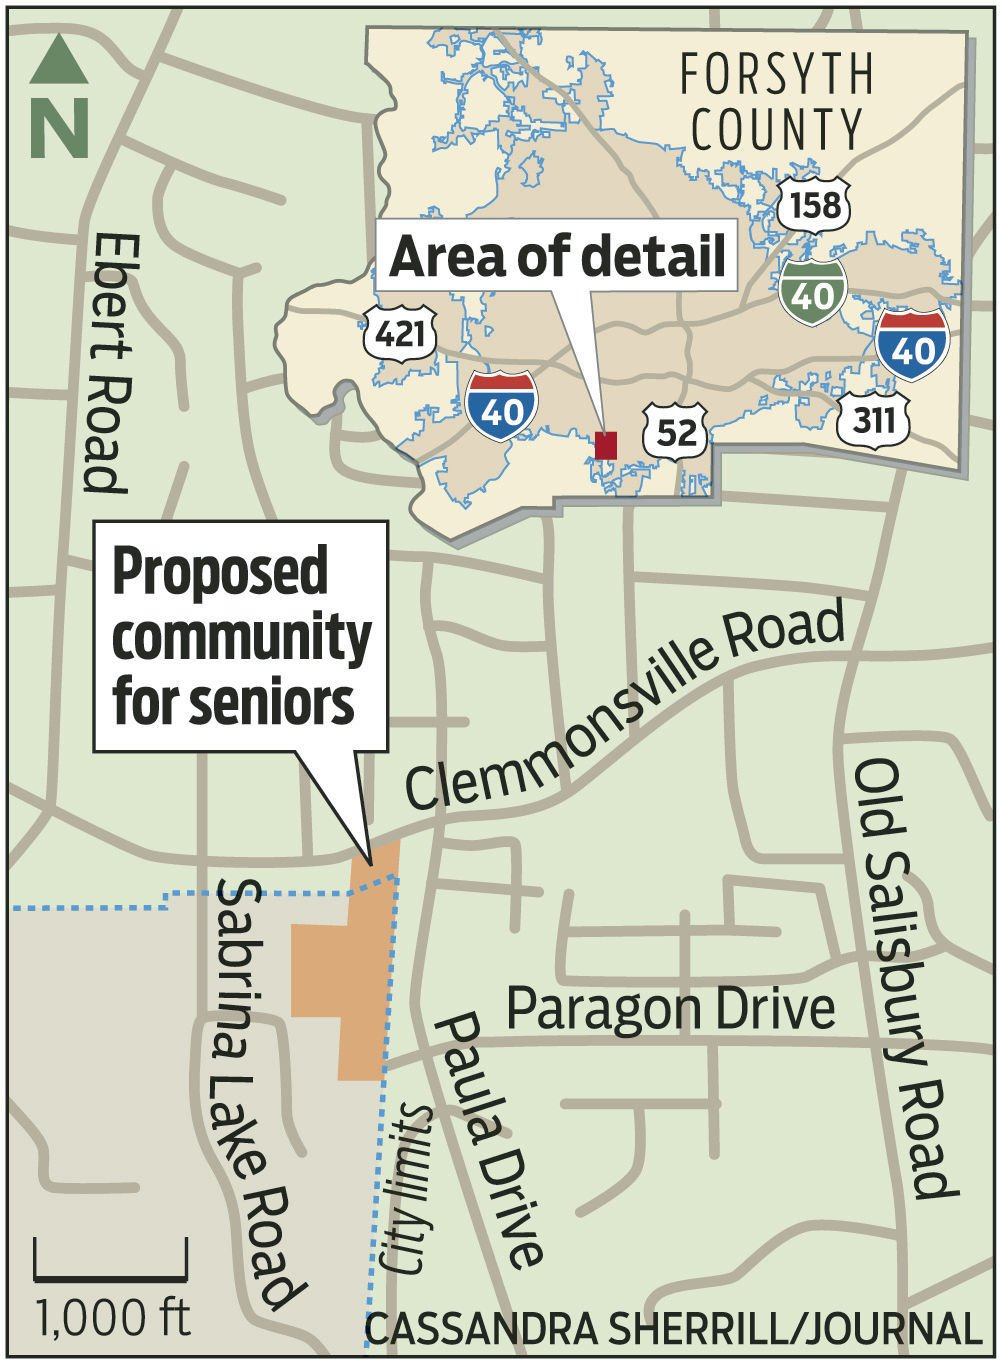 independent living facility proposed in southern forsyth